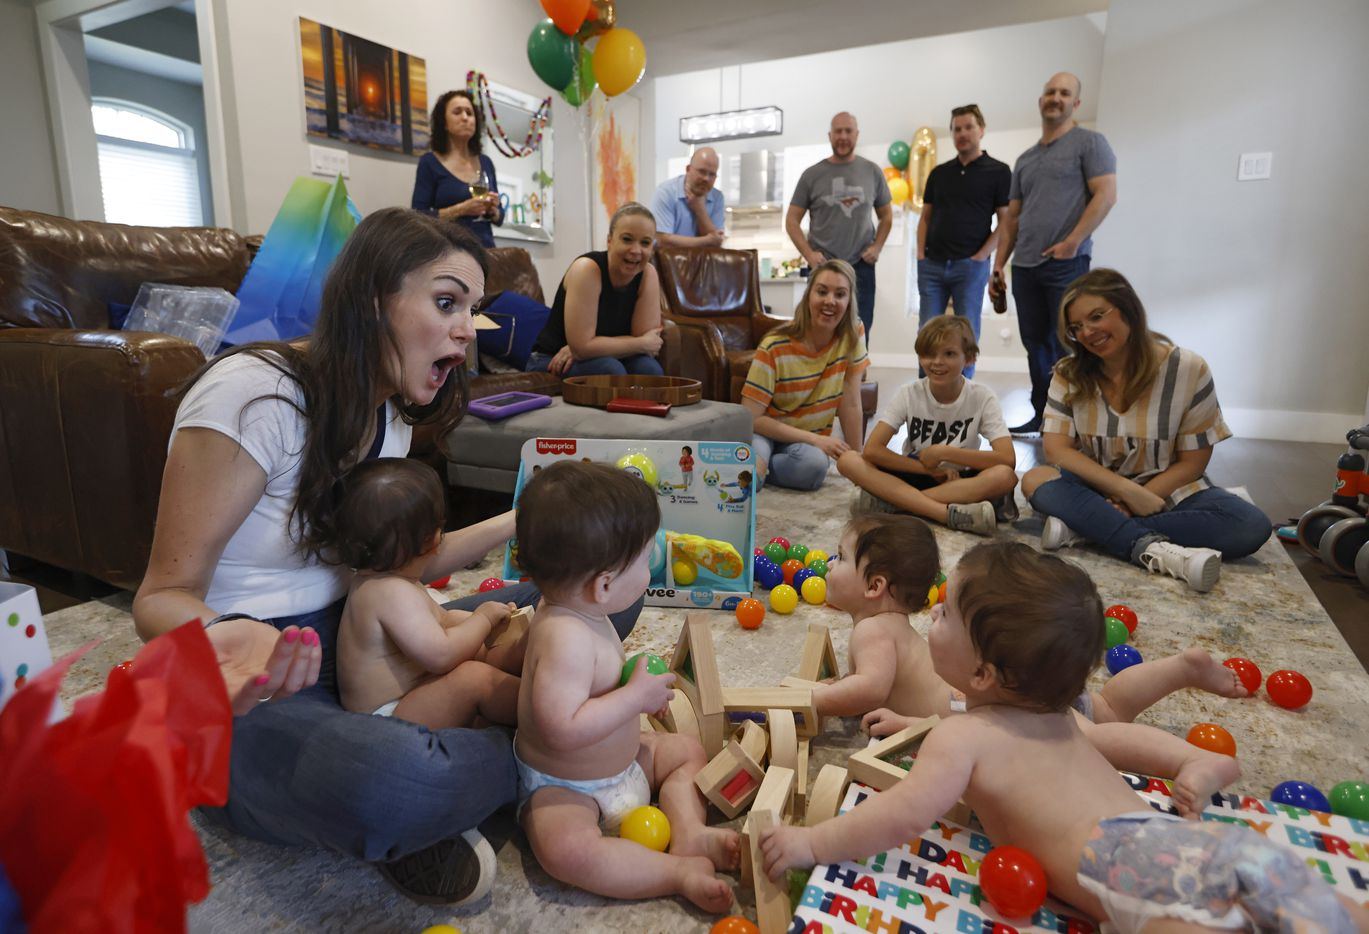 Jenny Marr helps open gifts for Harrison, Hardy, Henry, Hudson Marr as friends and family watch during their one year birthday party at their home on Monday, March 15, 2021in Grapevine, Texas.